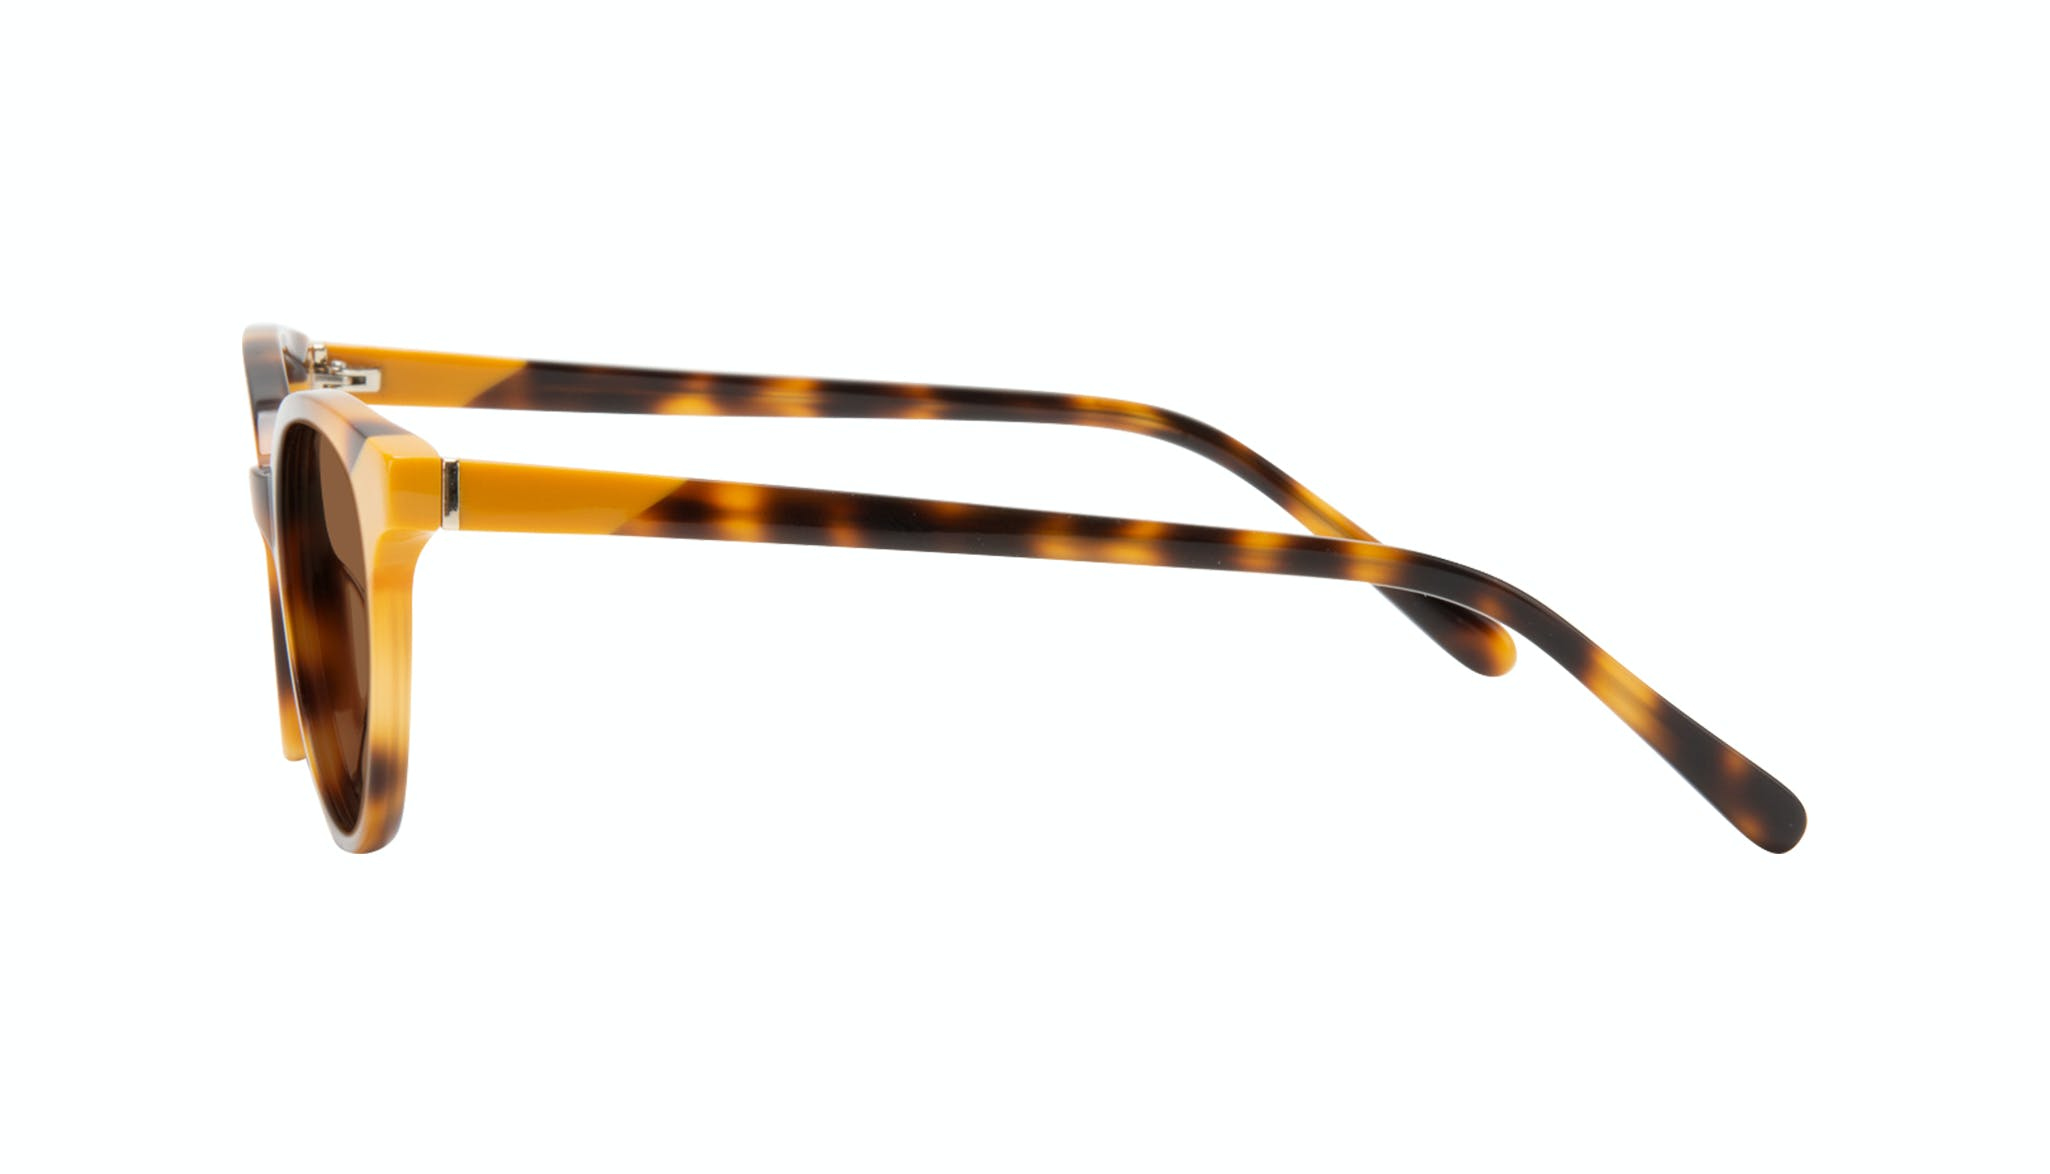 Affordable Fashion Glasses Round Sunglasses Women Bright Yellow Pop Side